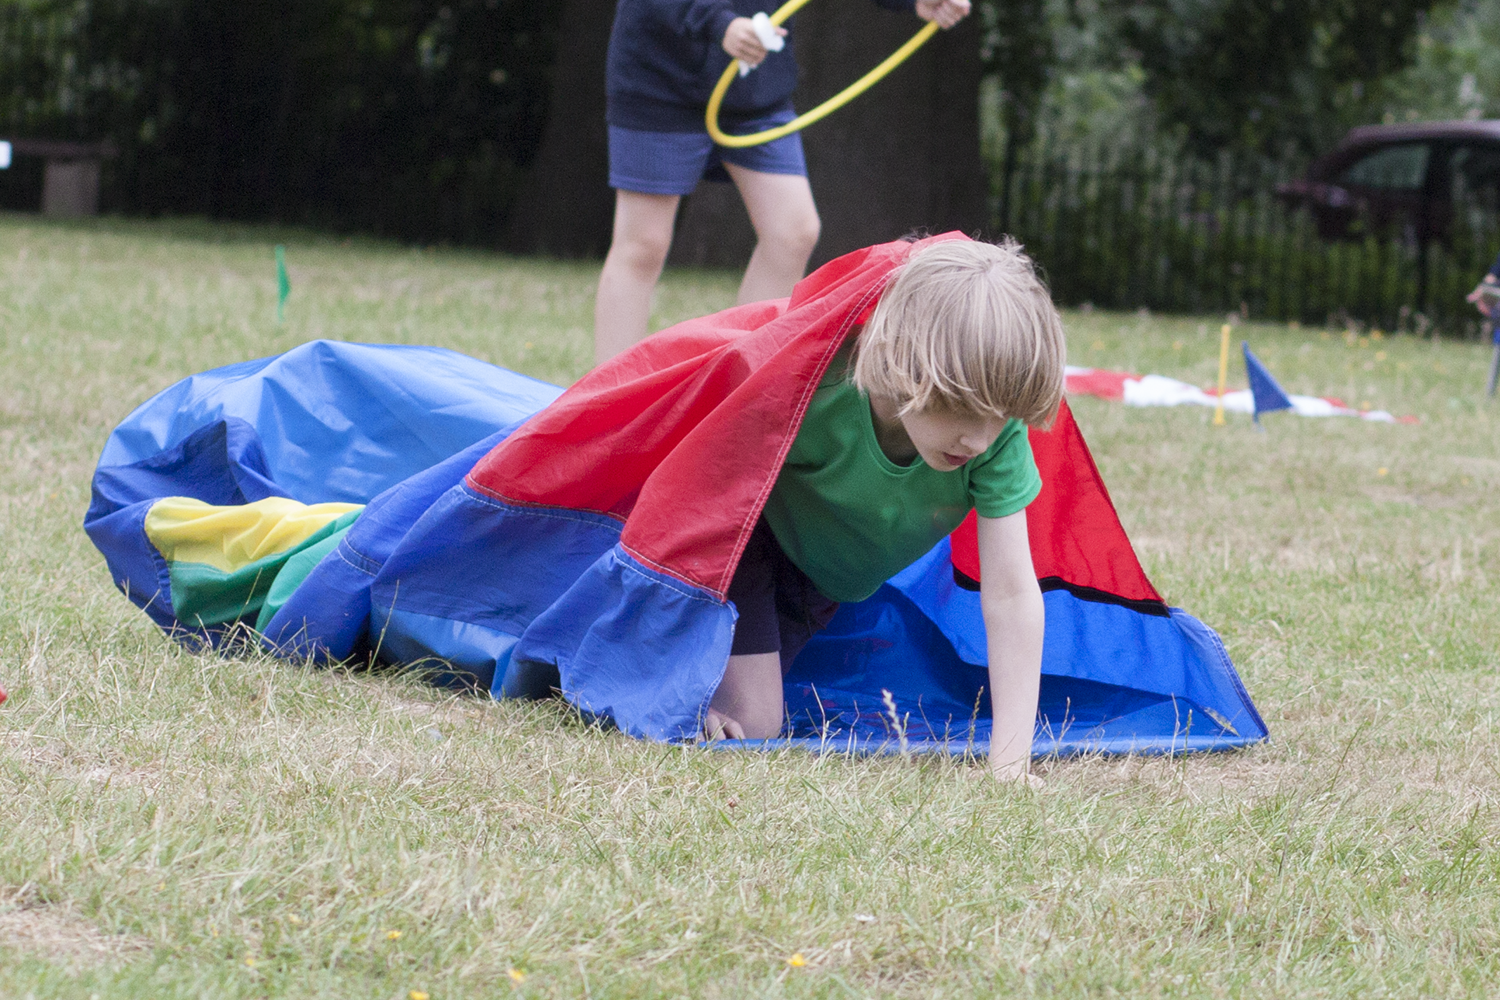 Toby coming out of a fabric tunnel on sports day